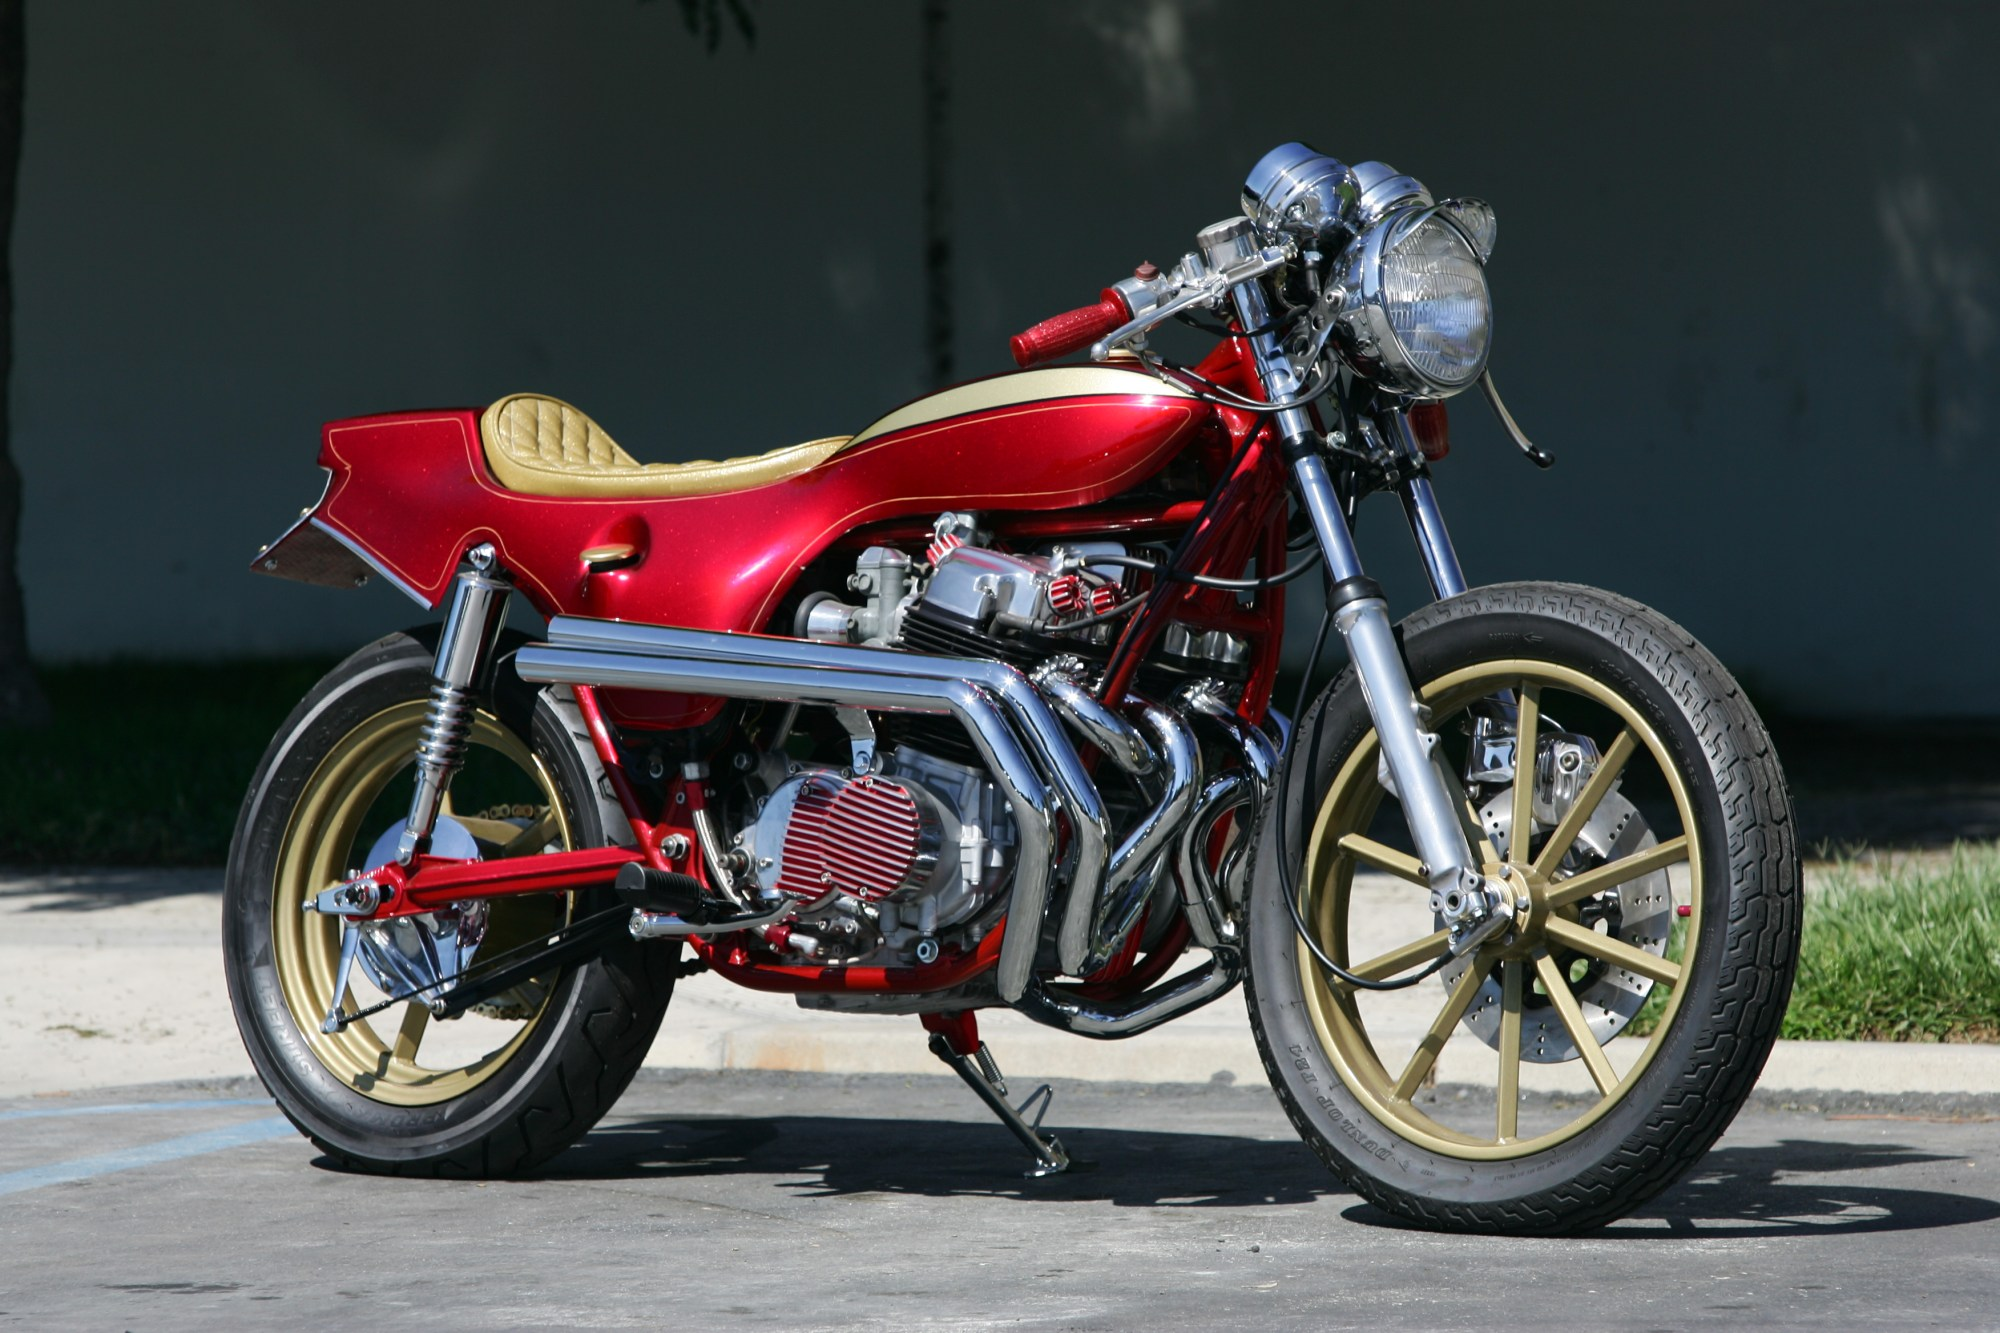 hight resolution of if you are building a cafe racer chopper brat or a classic looking ride then look no further as we have done these here in california since feb 2000